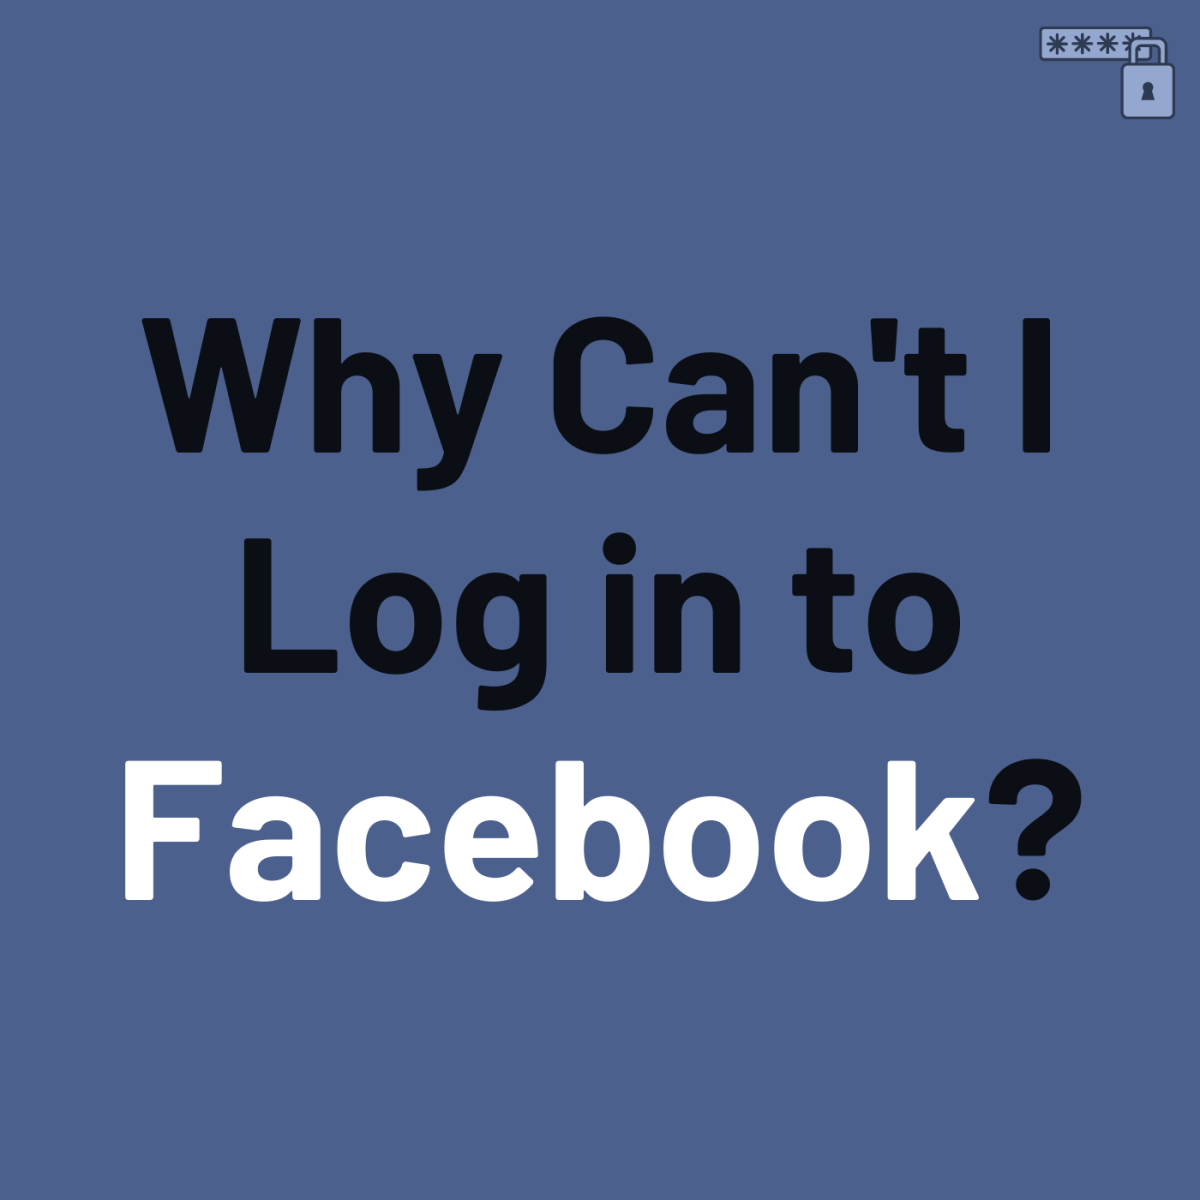 Review some of the reasons while you're unable to log in to Facebook, like using an incorrect email or having a caching problem.